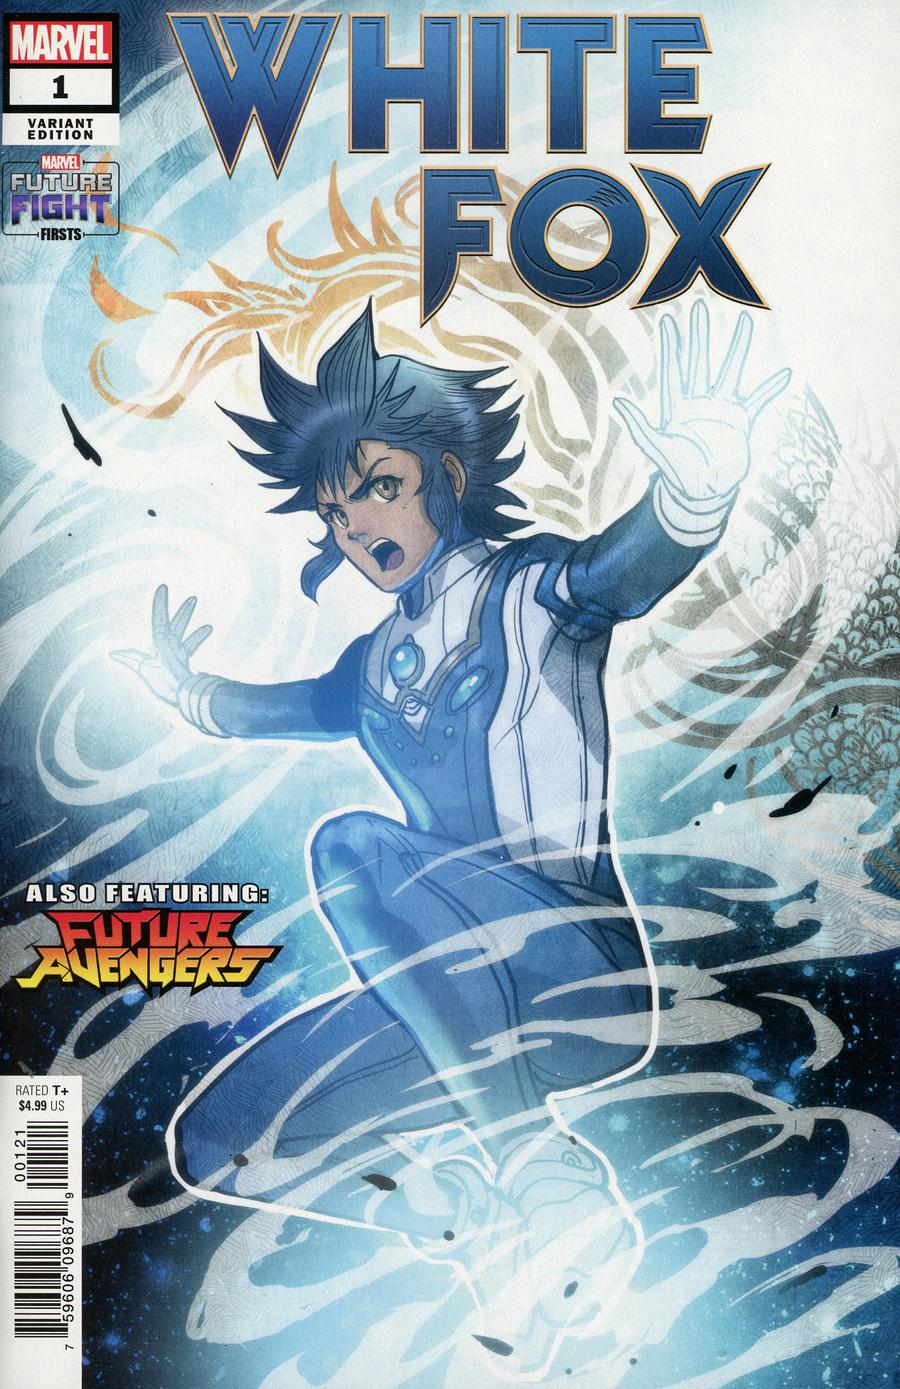 Future Fight Firsts White Fox #1 Cover B Variant Sana Takeda Marvels Future Avengers Cover